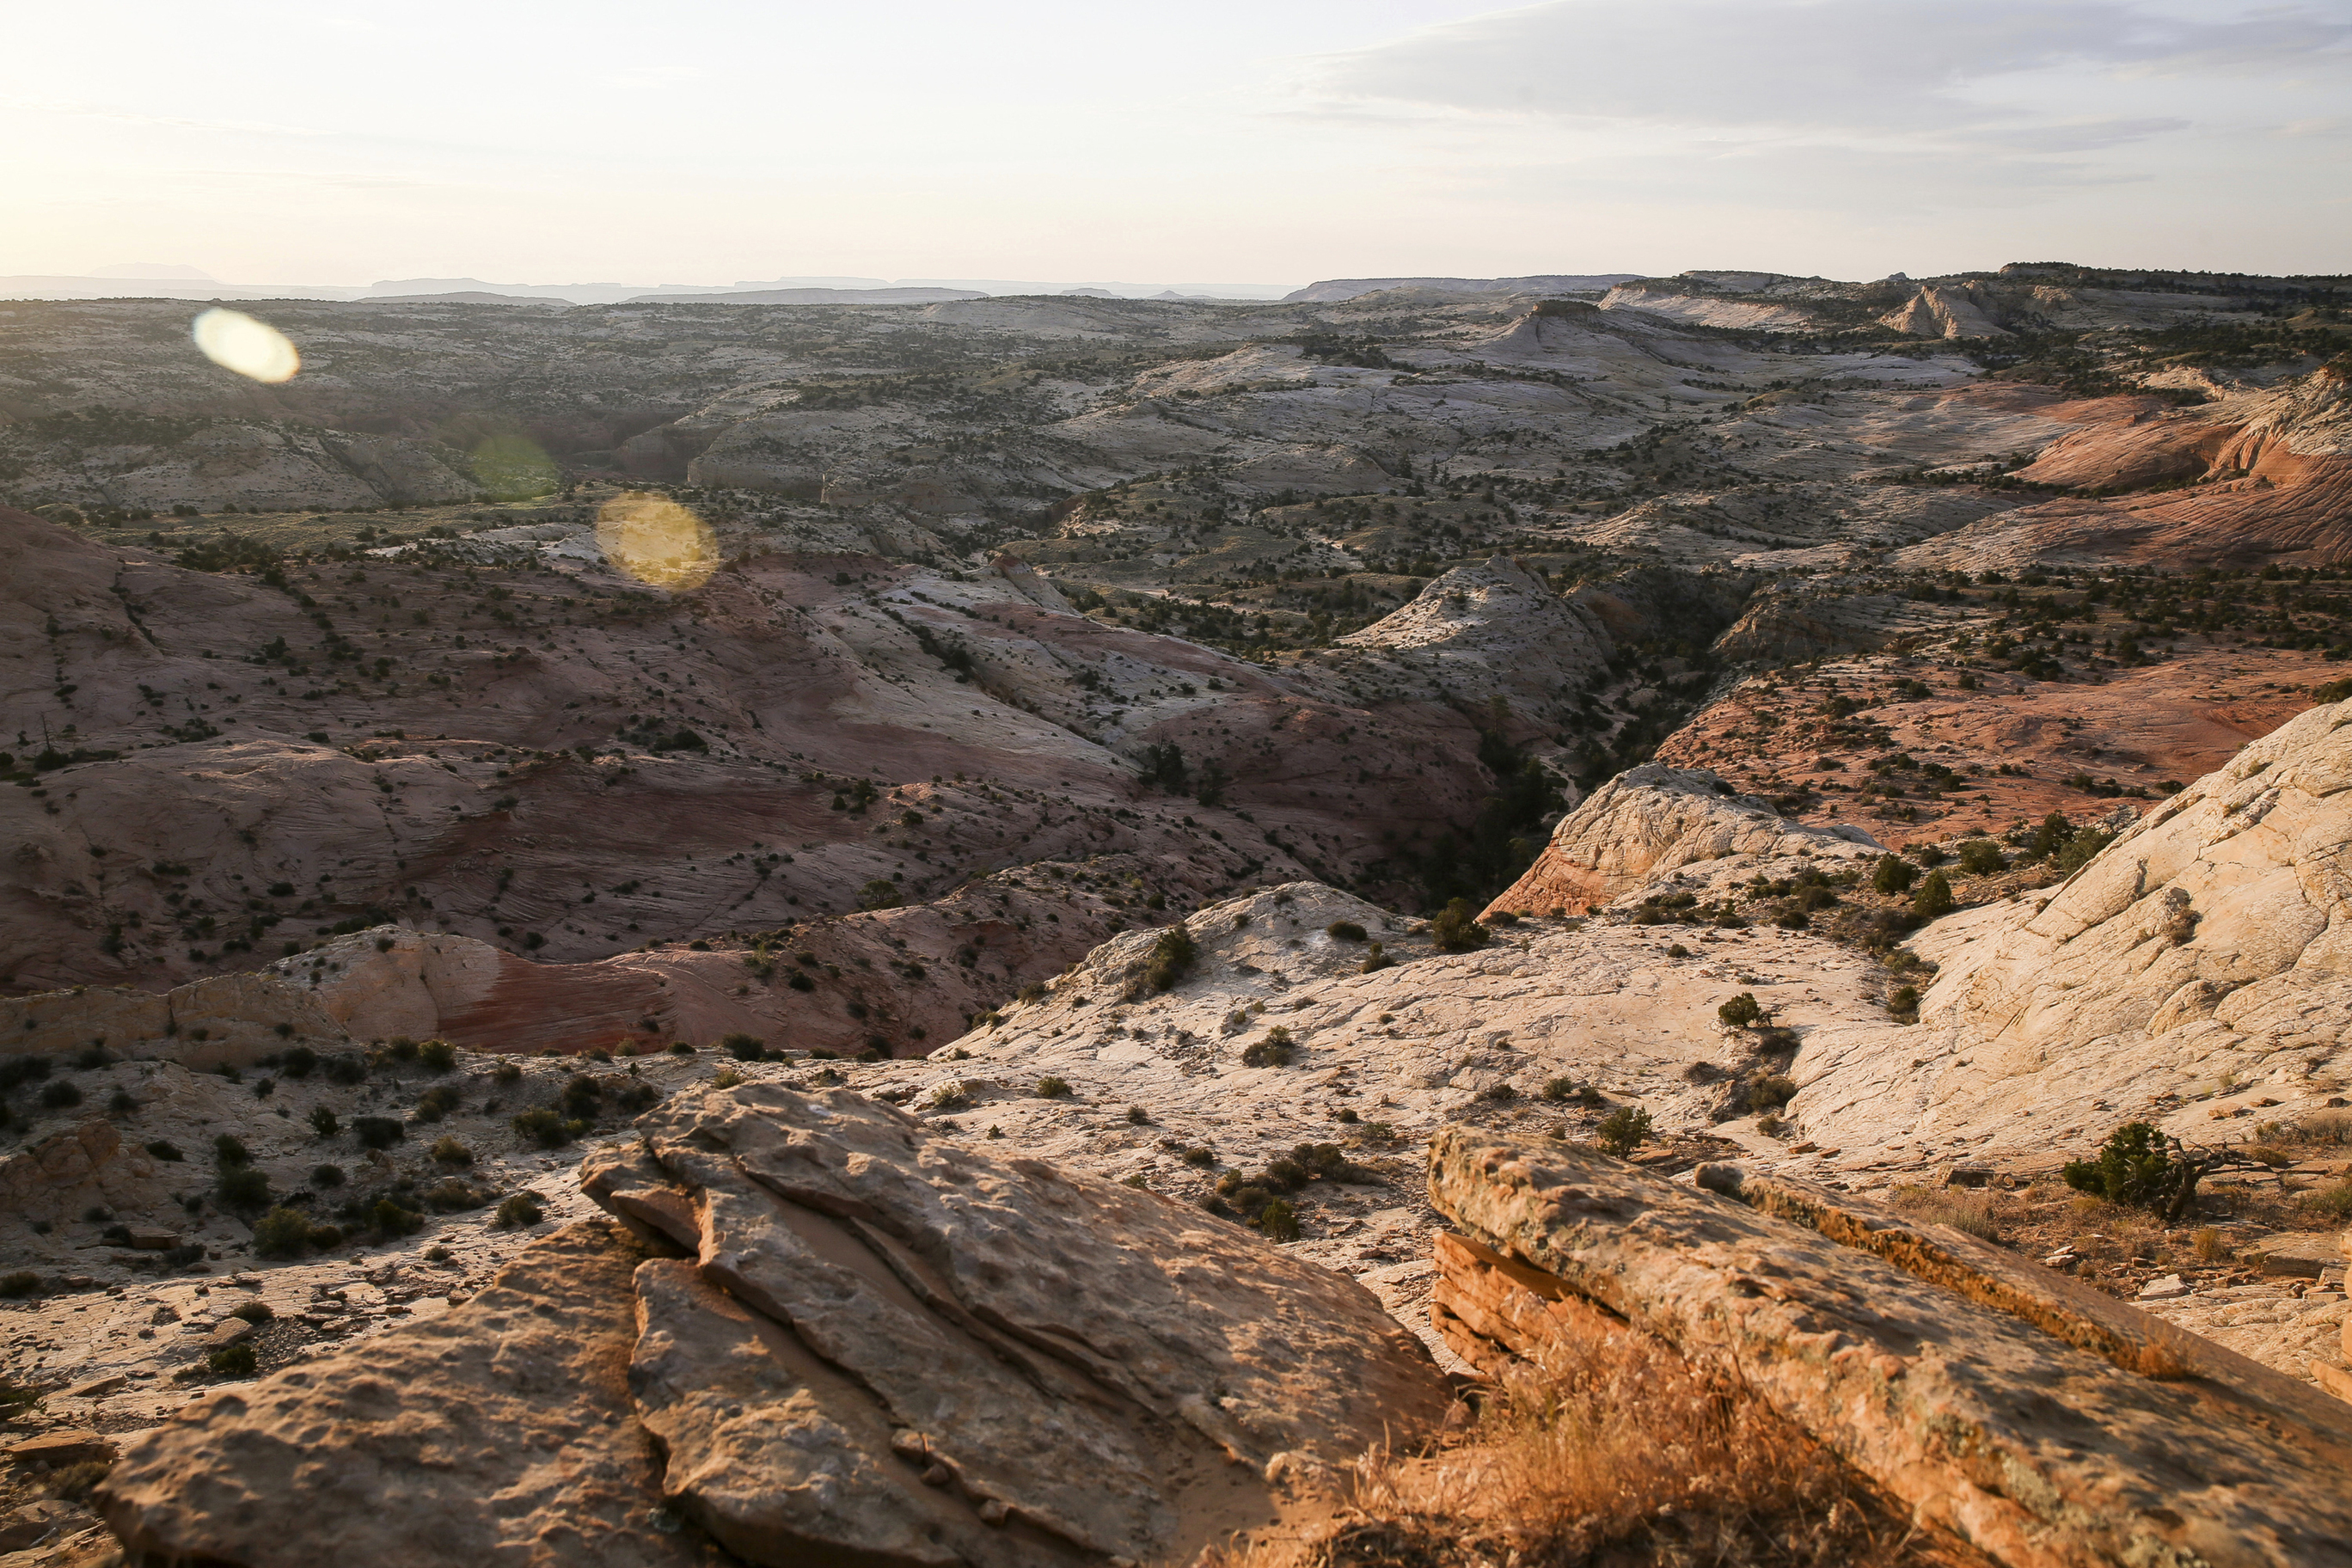 Plan allows drilling, grazing near national monument in Utah